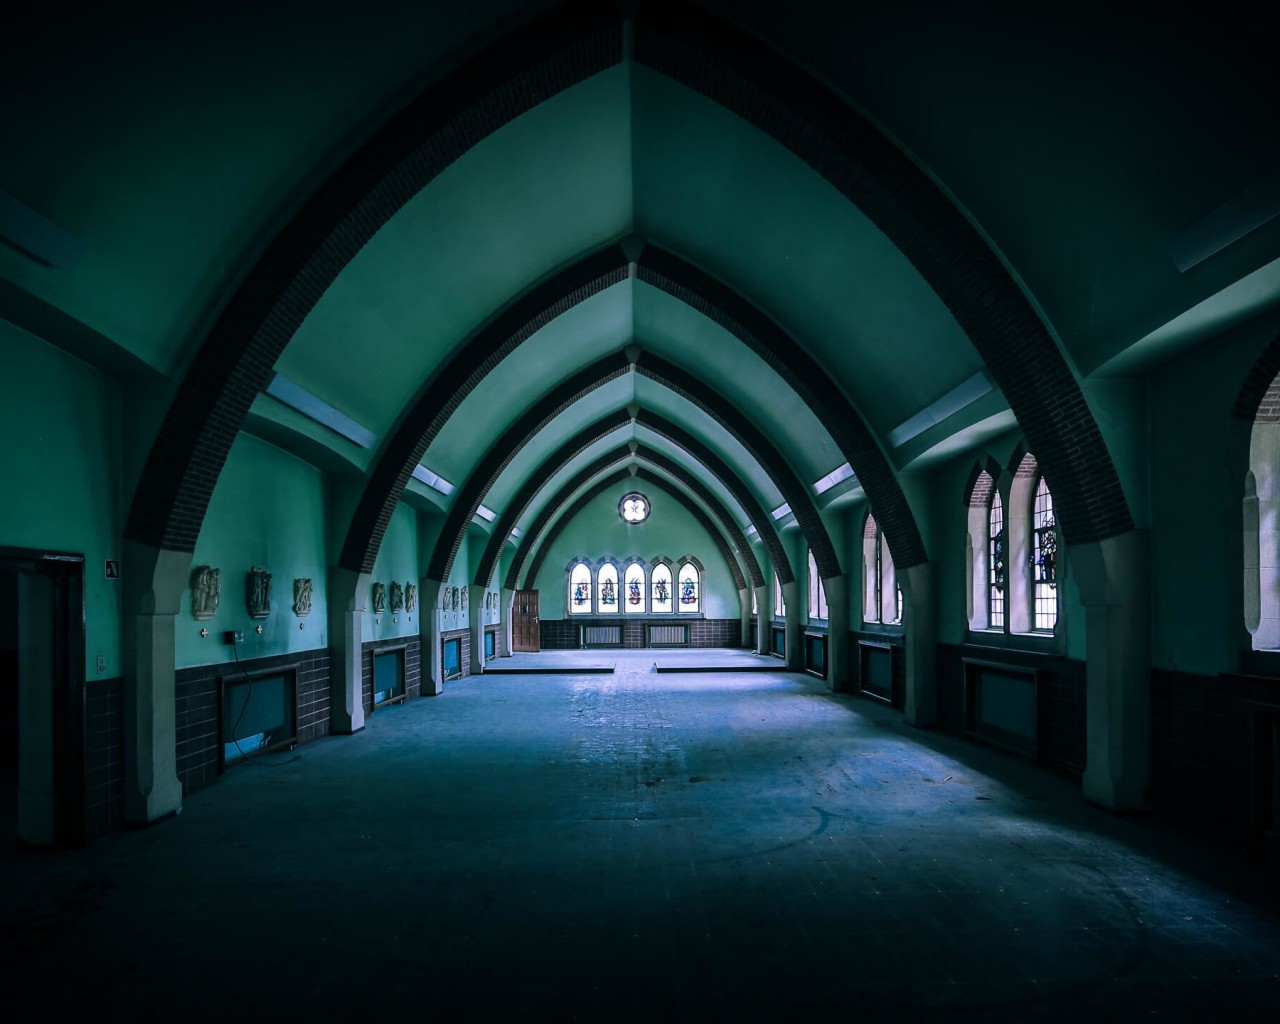 Empty Chapel Wallpaper for Desktop 1280x1024